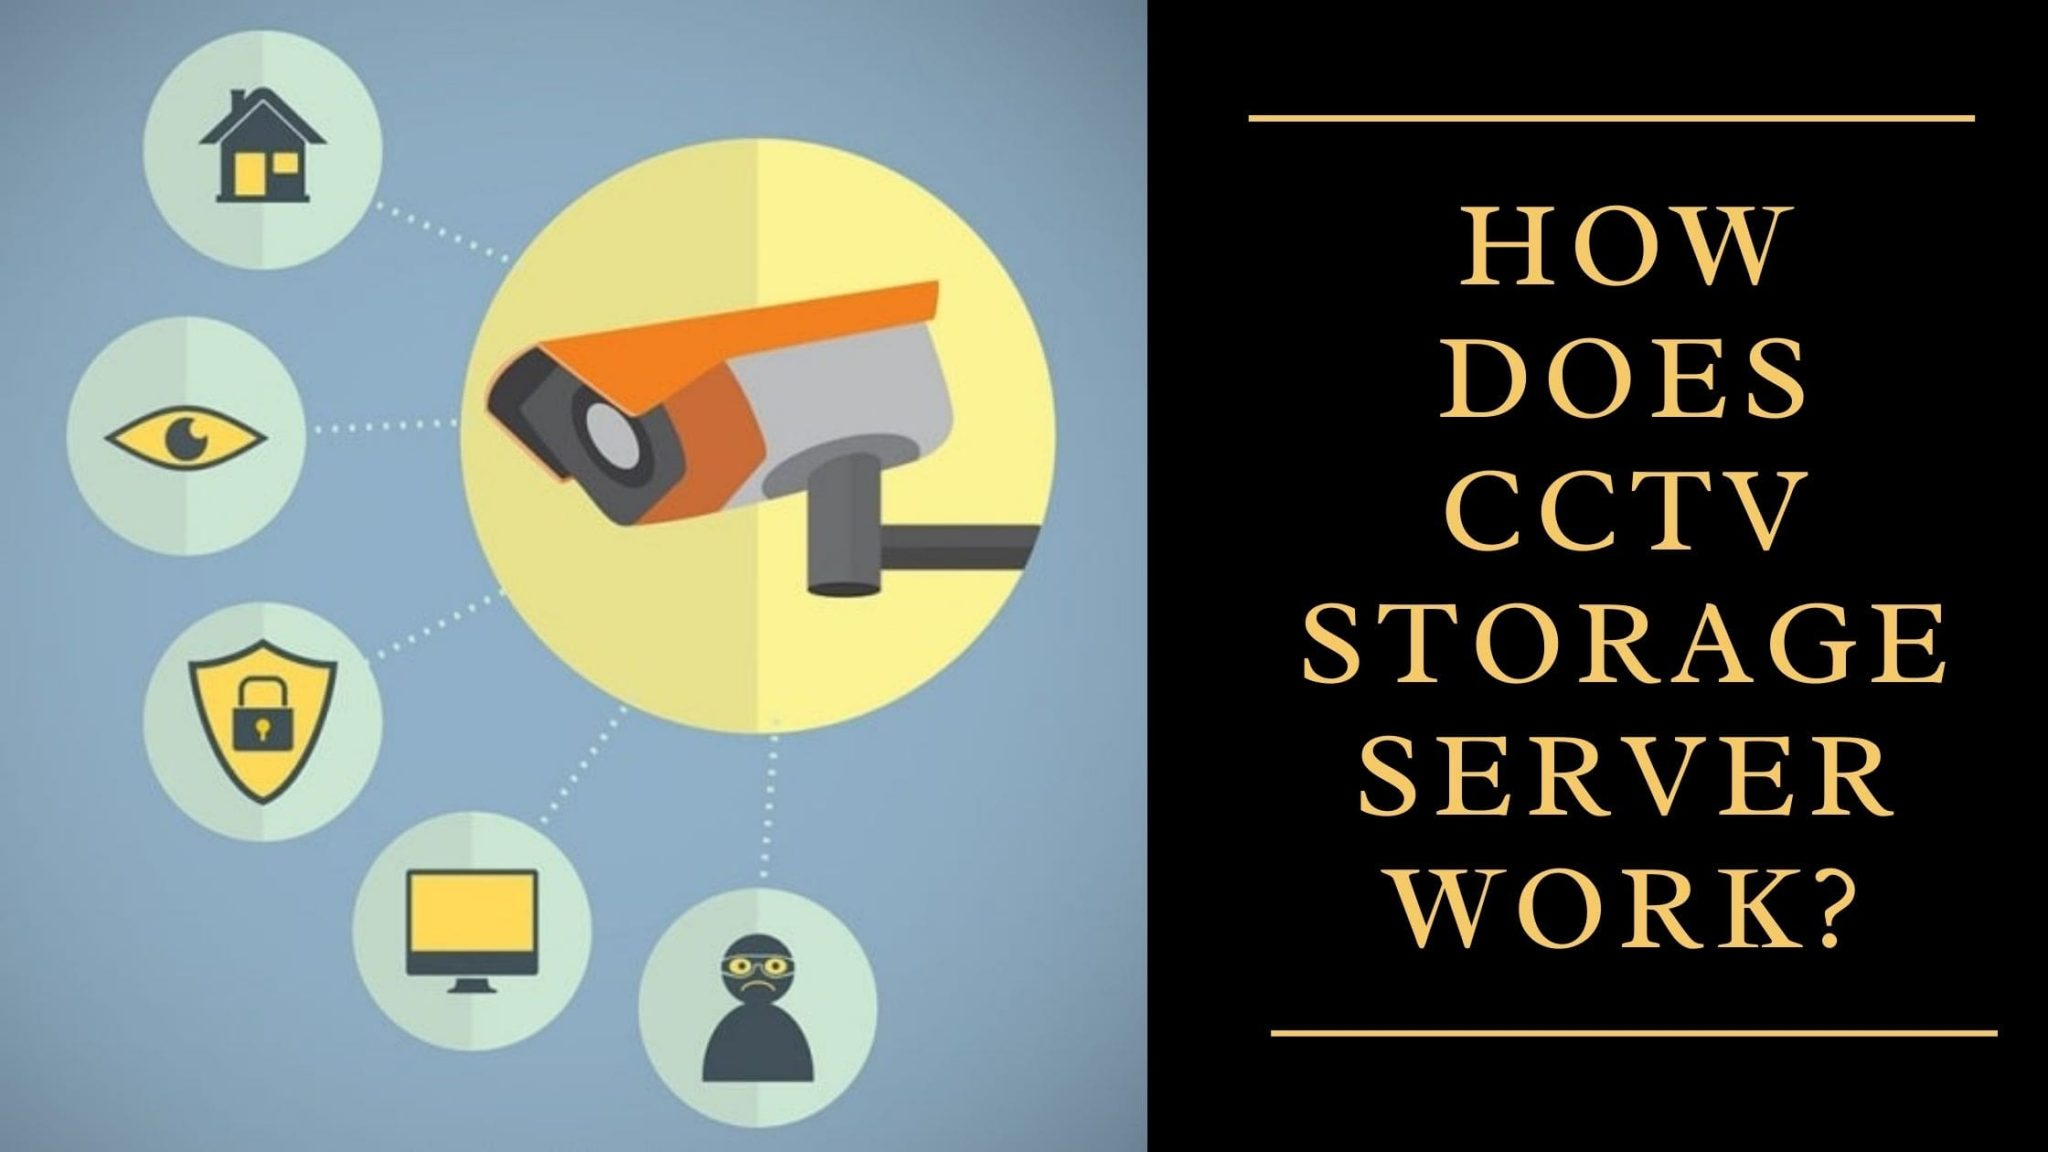 How Does CCTV Storage Server Work?